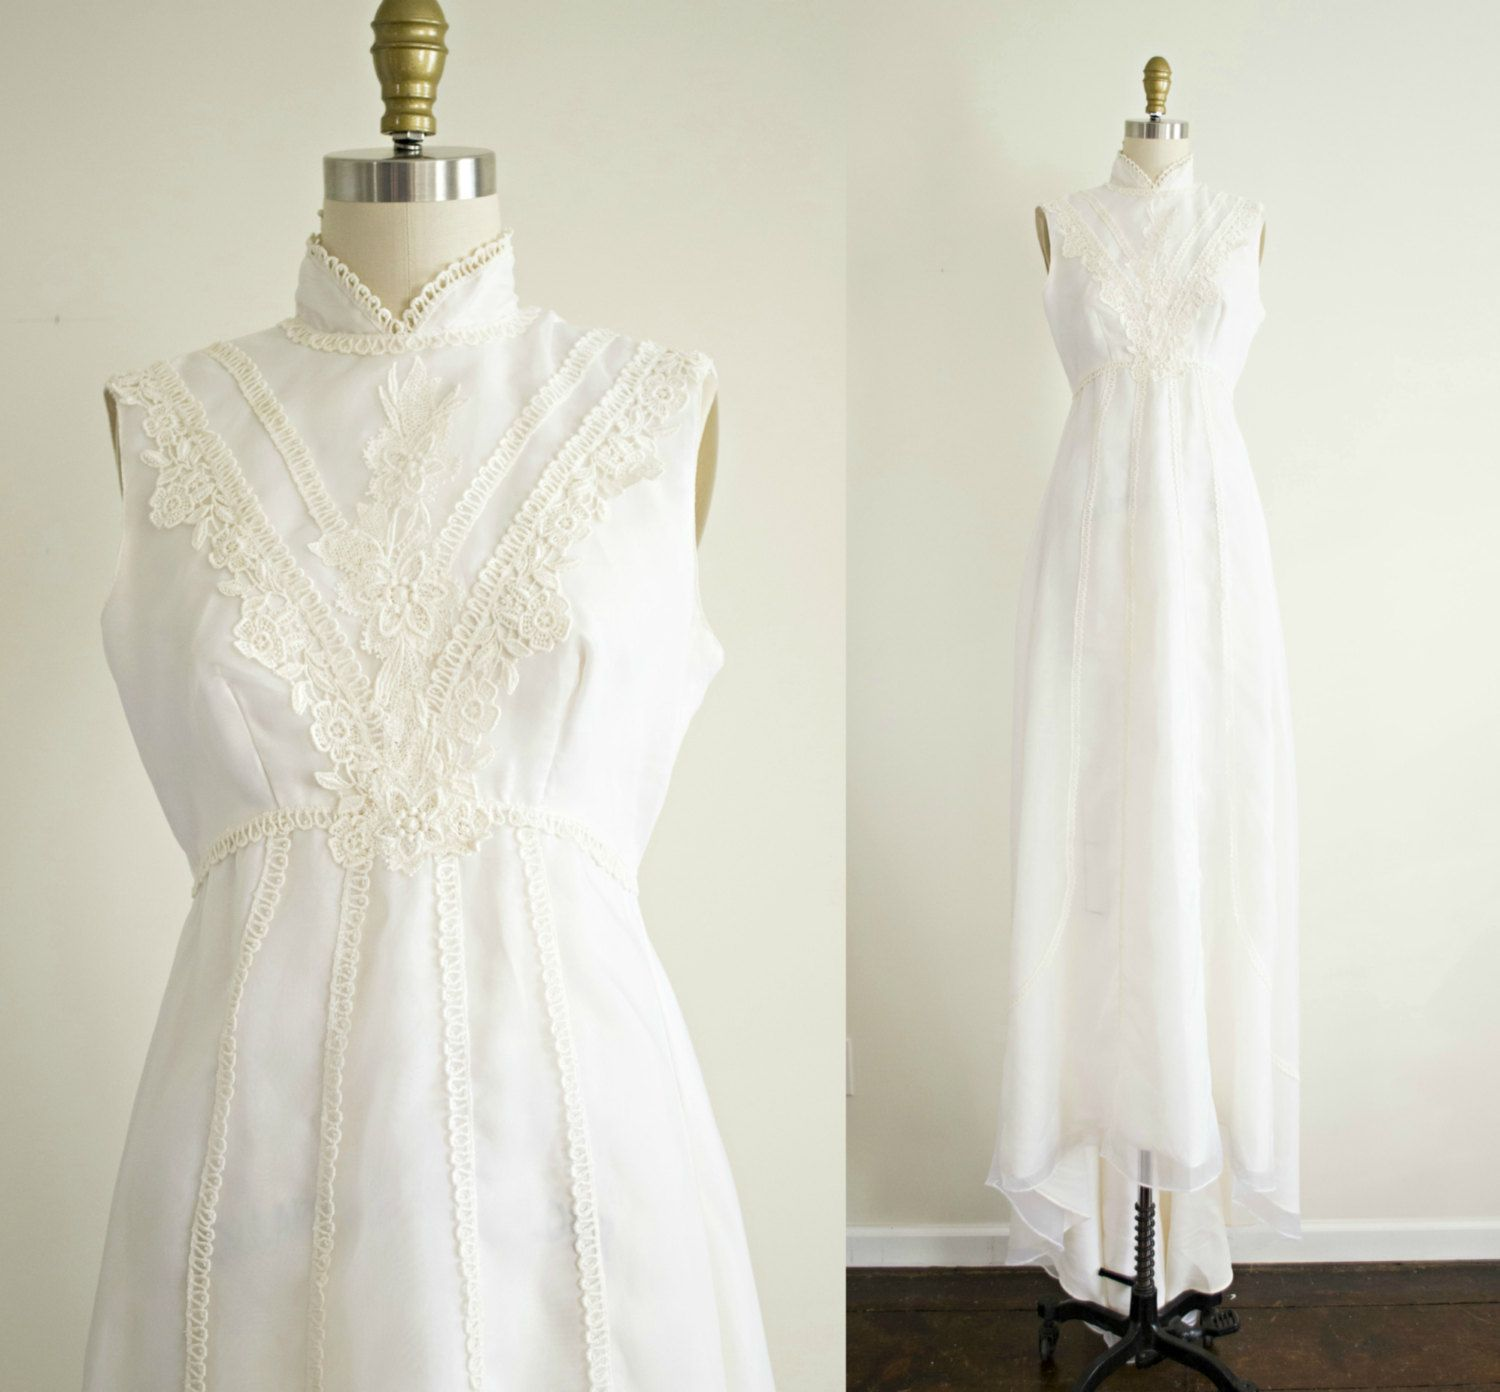 White lace dress vintage  Victorian inspired bohemian vintage wedding dress  chiffon and lace